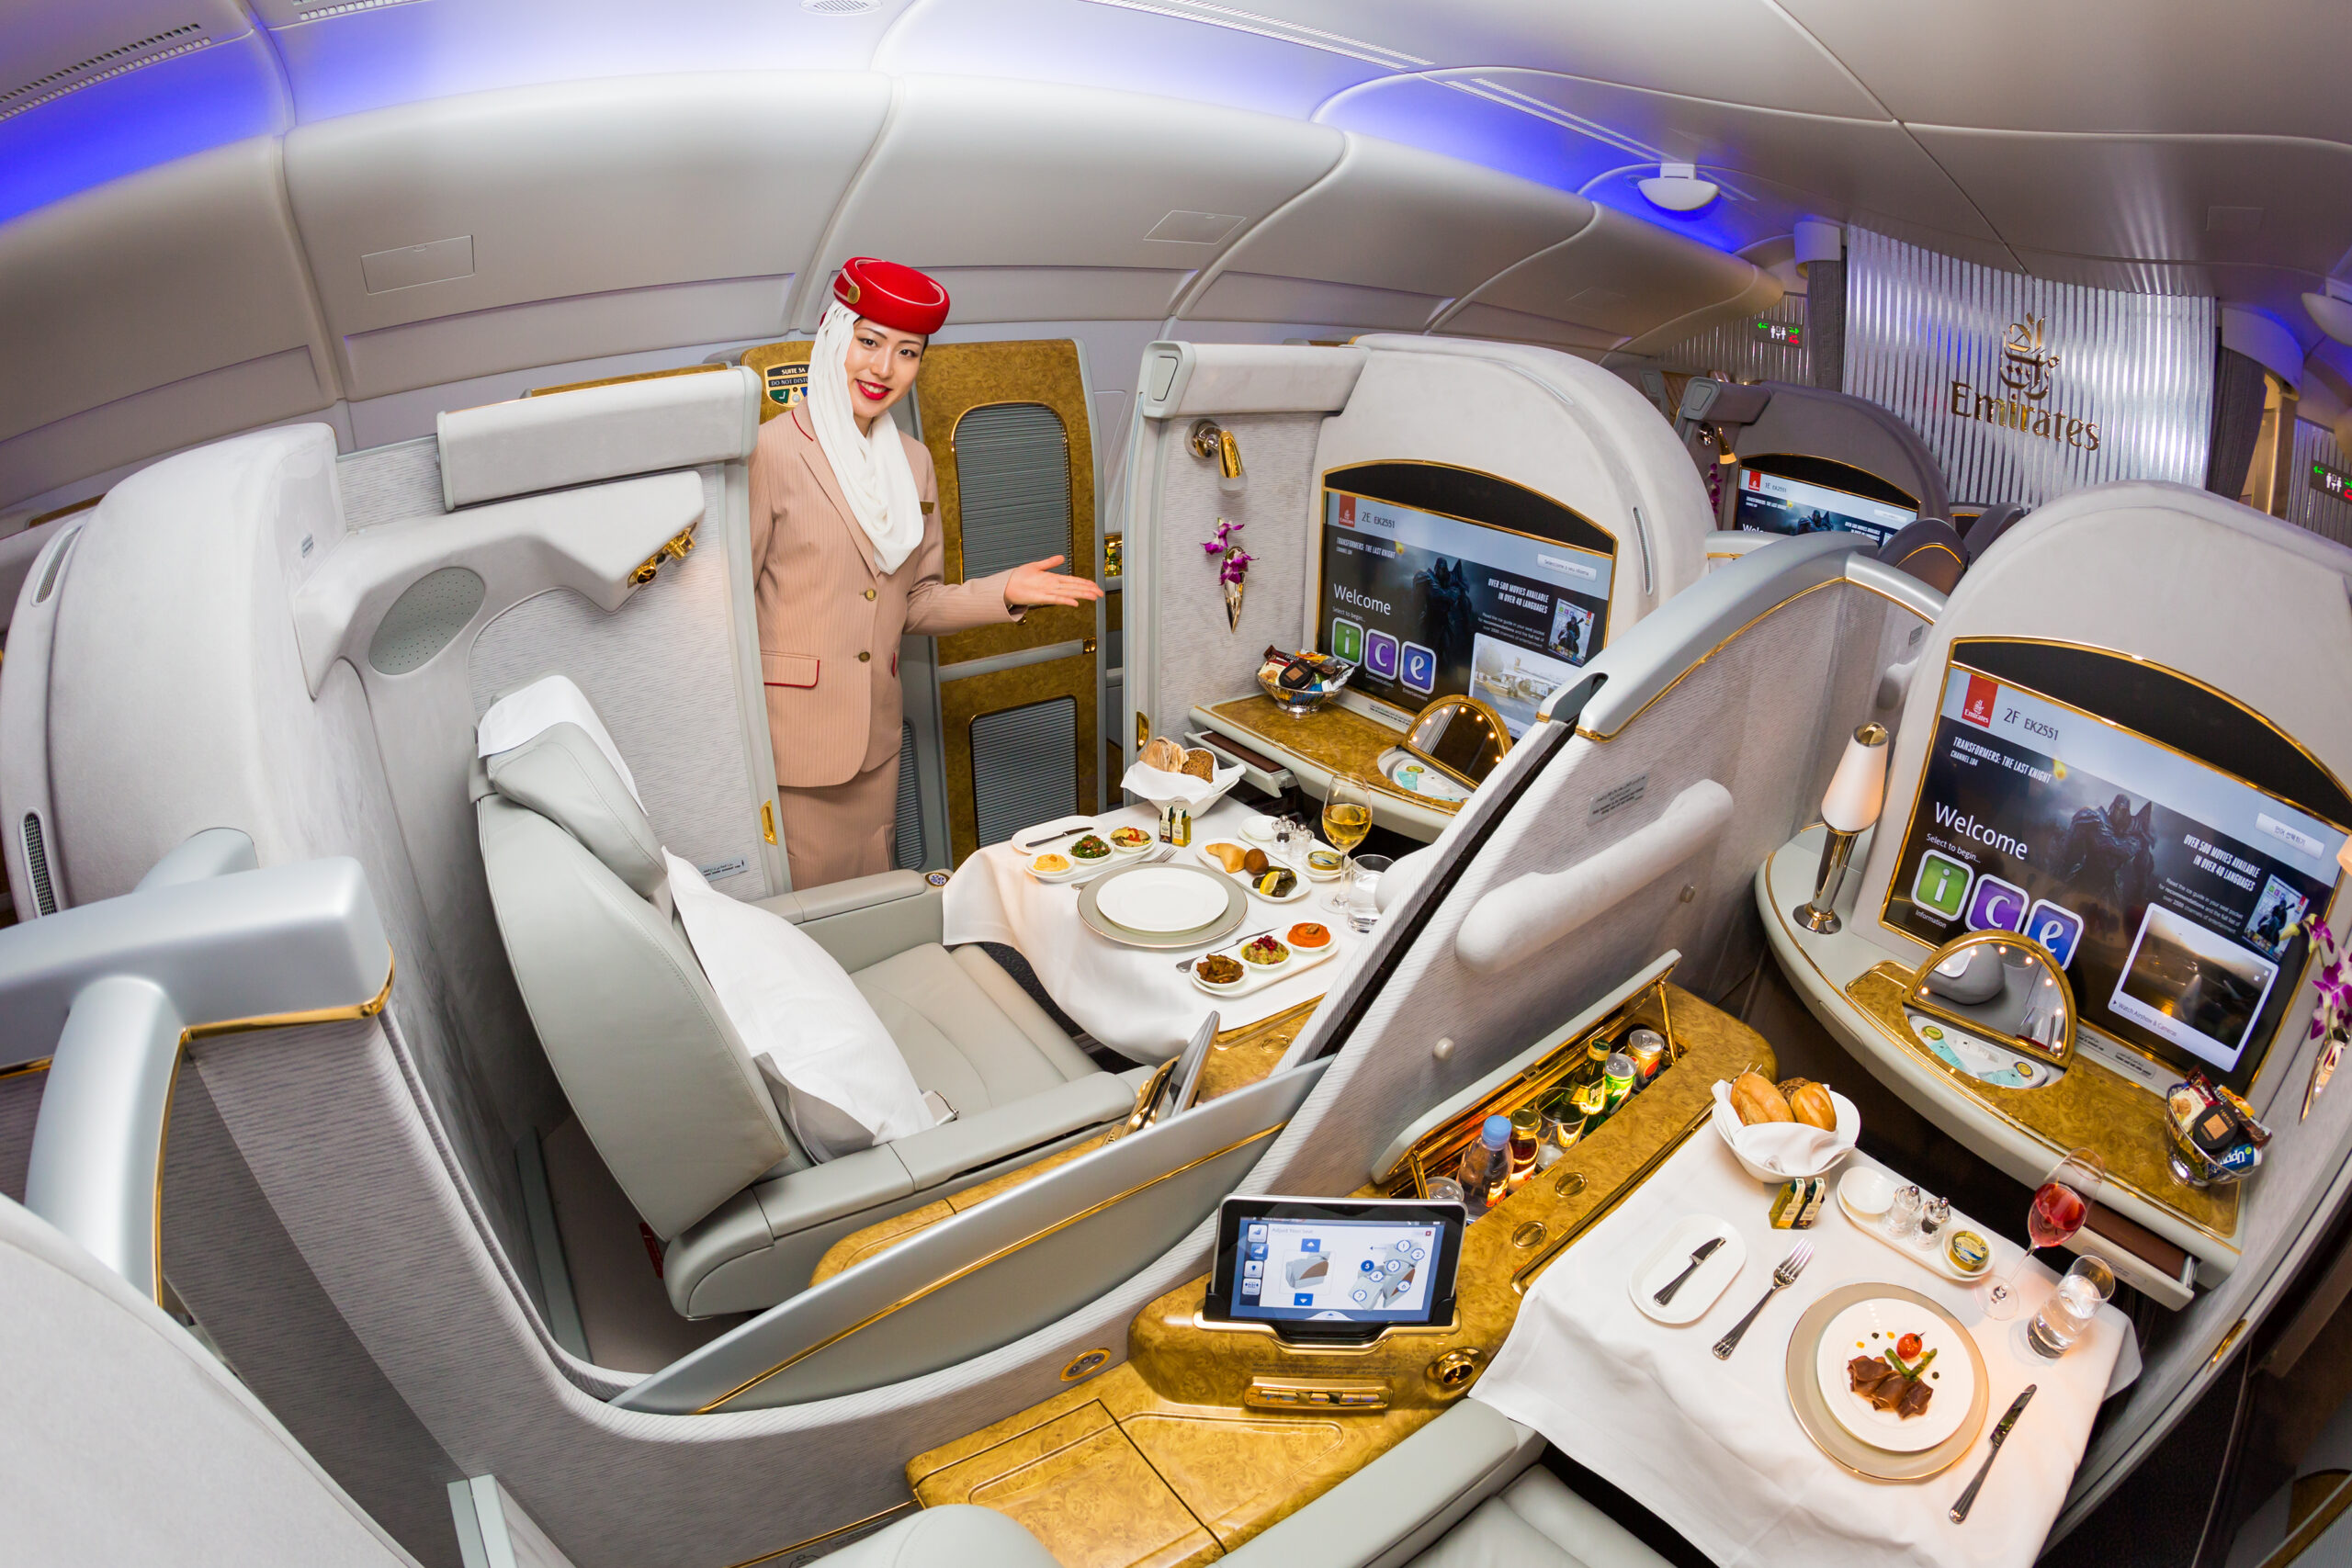 Emirates Airline flight attendant. Emirates first class. Onboard food, dining. Luxury travel. Airbus A380. First class suite.